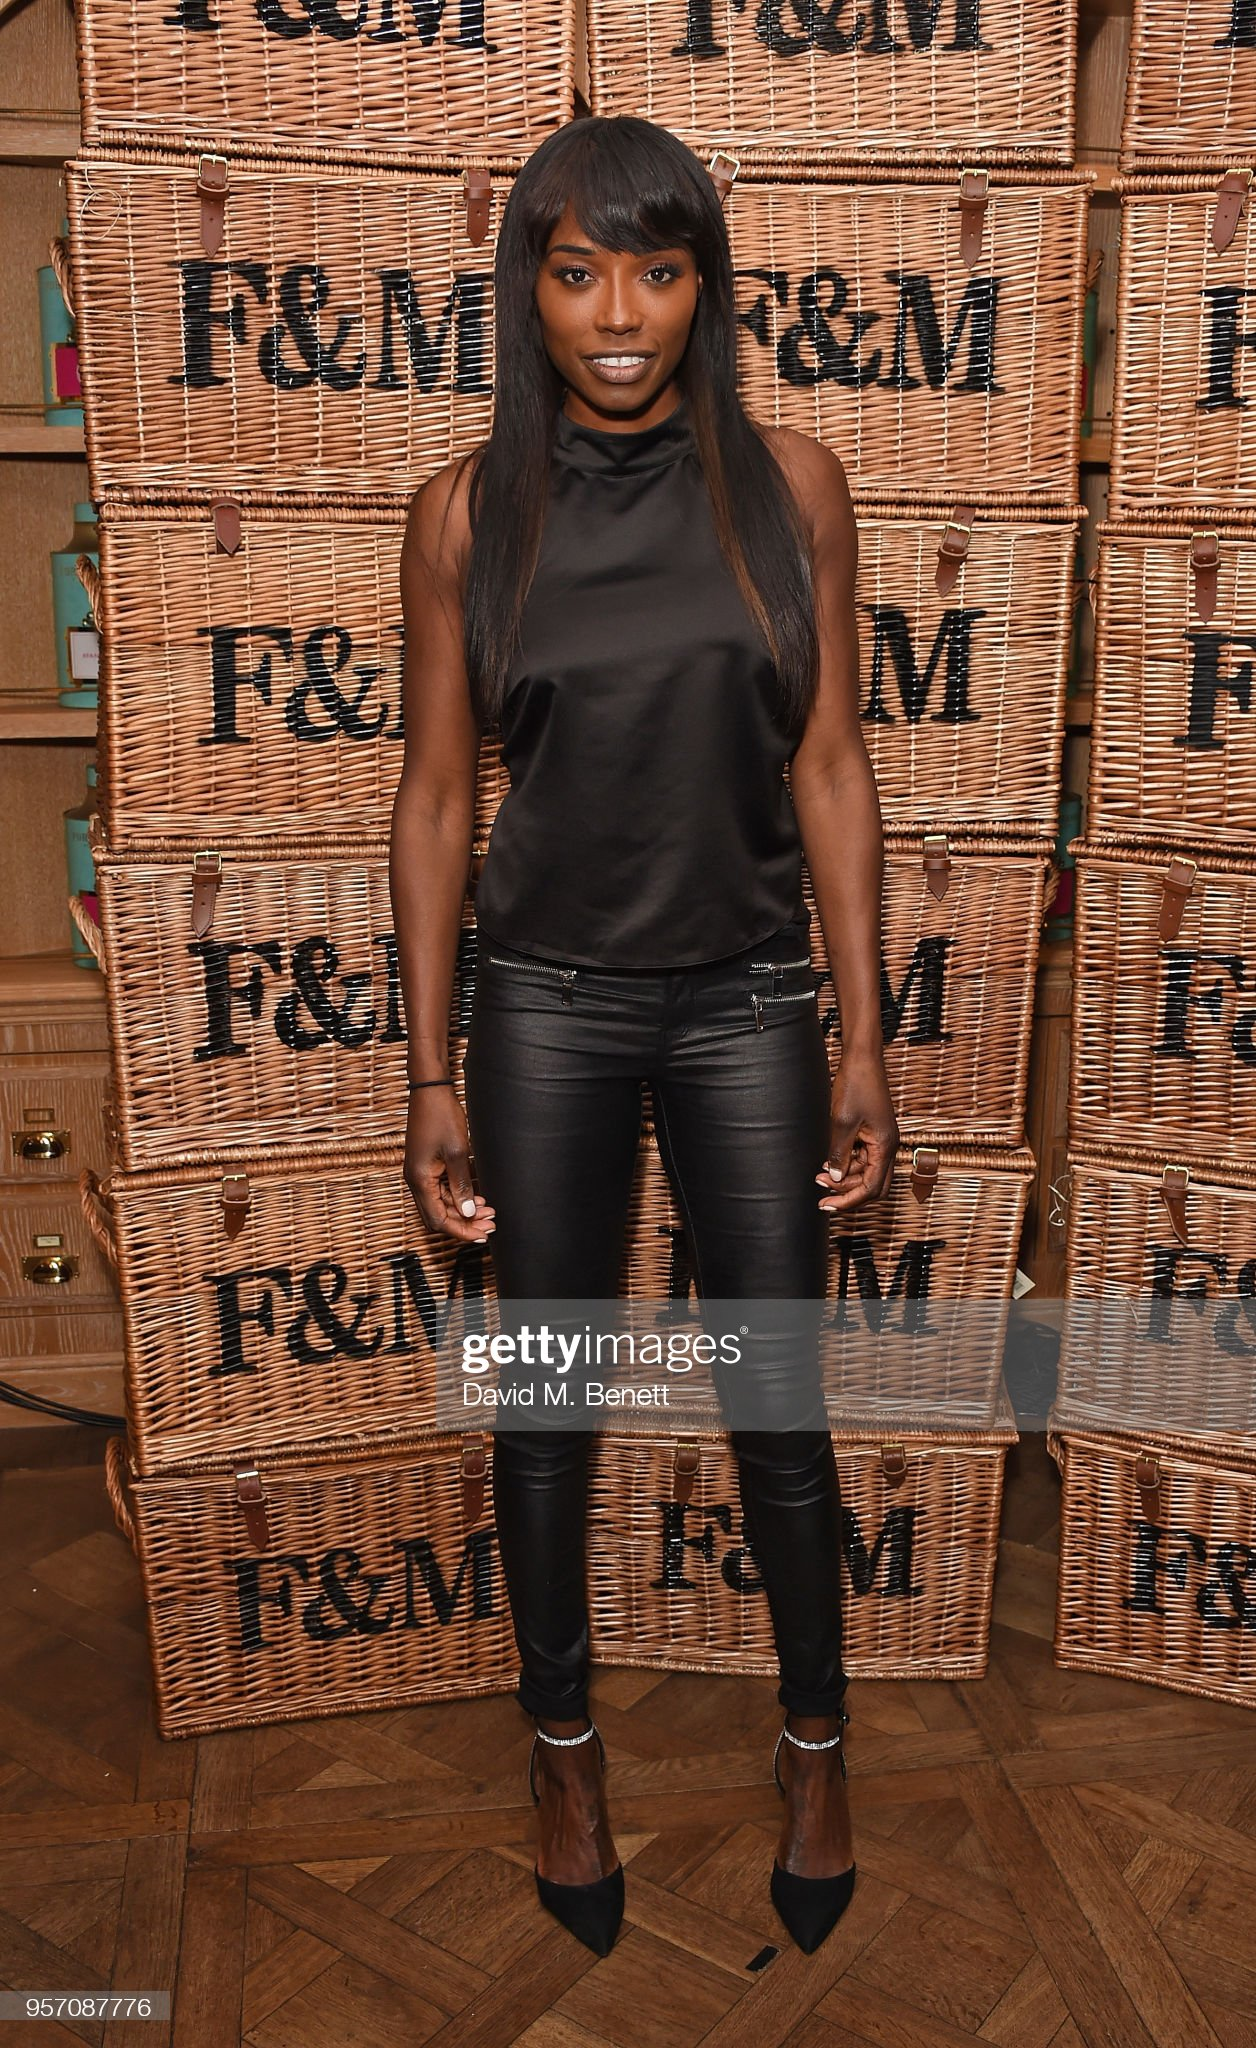 ¿Cuánto mide Lorraine Pascale? - Altura - Real height Lorraine-pascale-attends-the-fortnum-mason-food-and-drink-awards-on-picture-id957087776?s=2048x2048